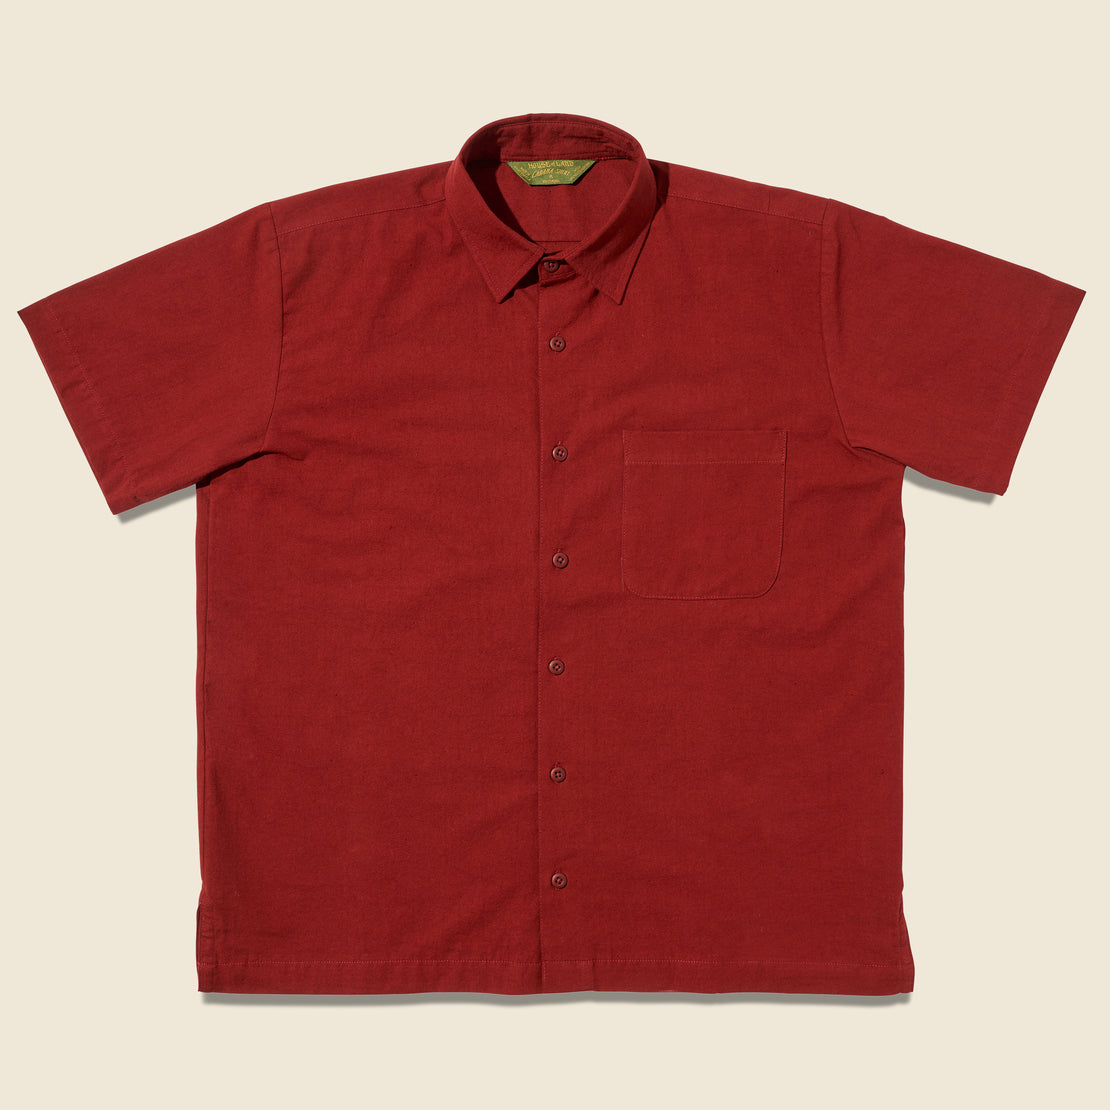 House of LAND Cabana Shirt - Rojo